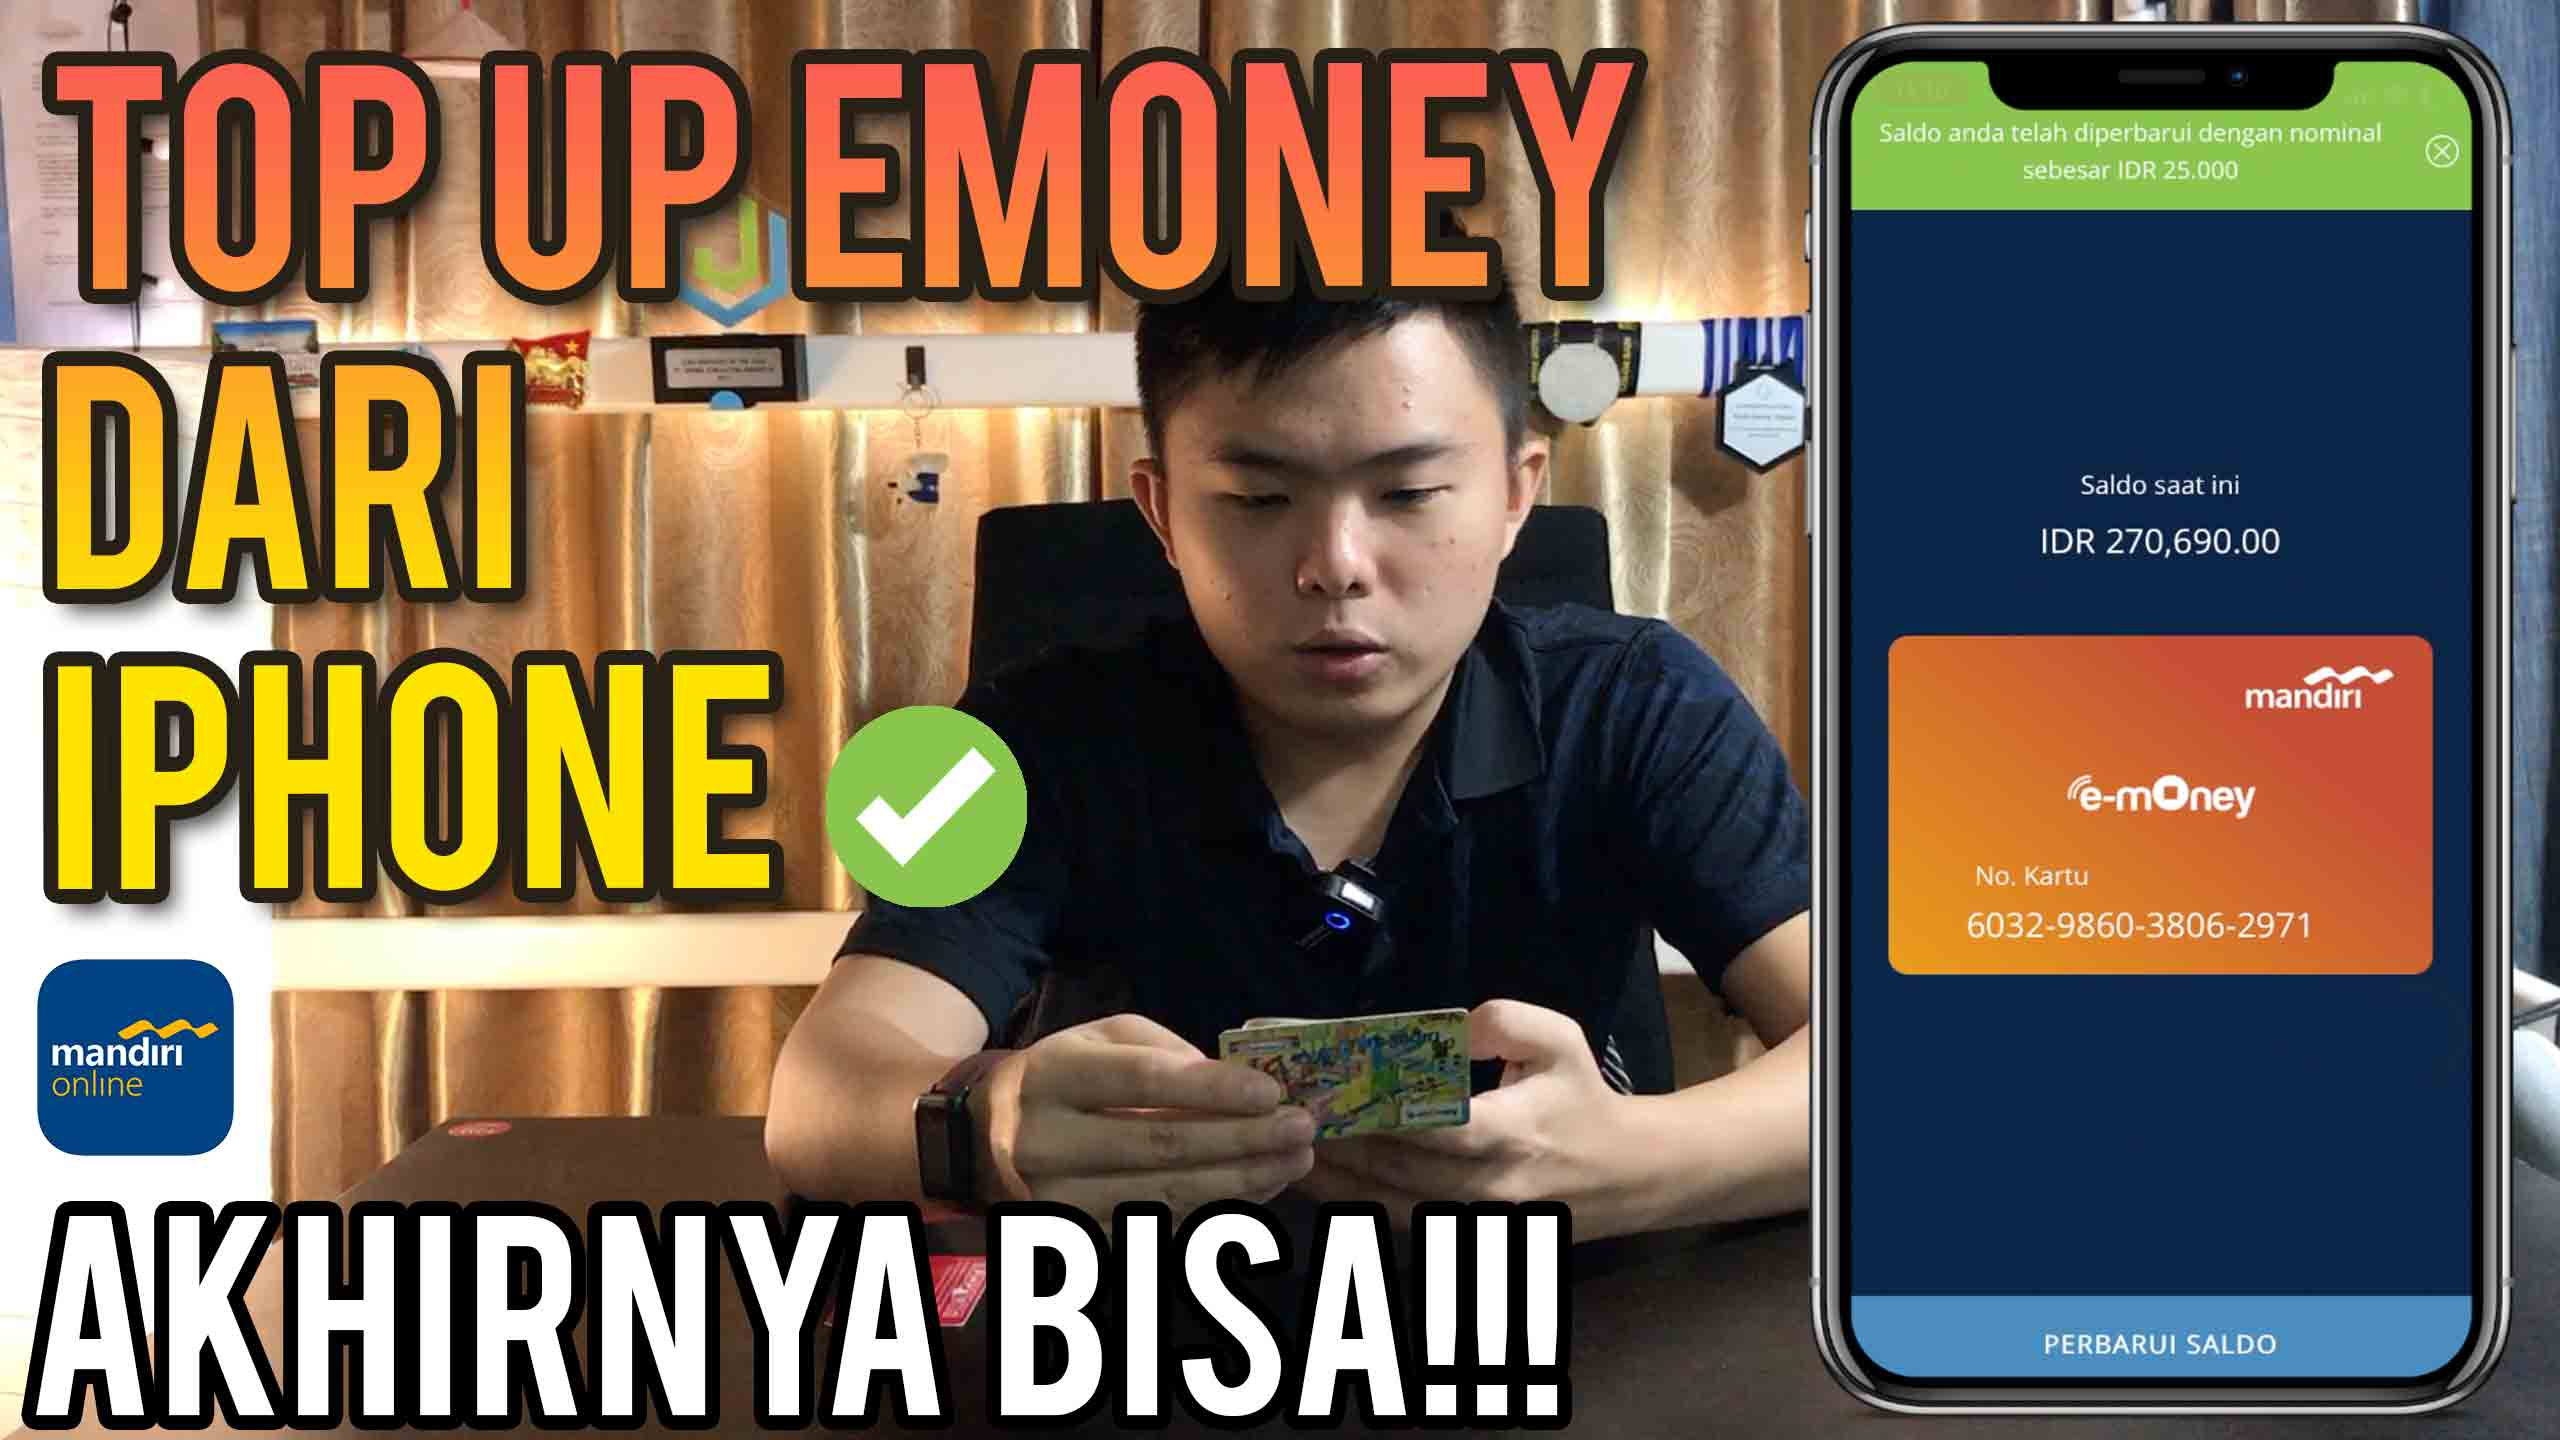 How To Top Up E Money From Iphone Is That Possible 2020 Kevin Kennedy Kie S Blog